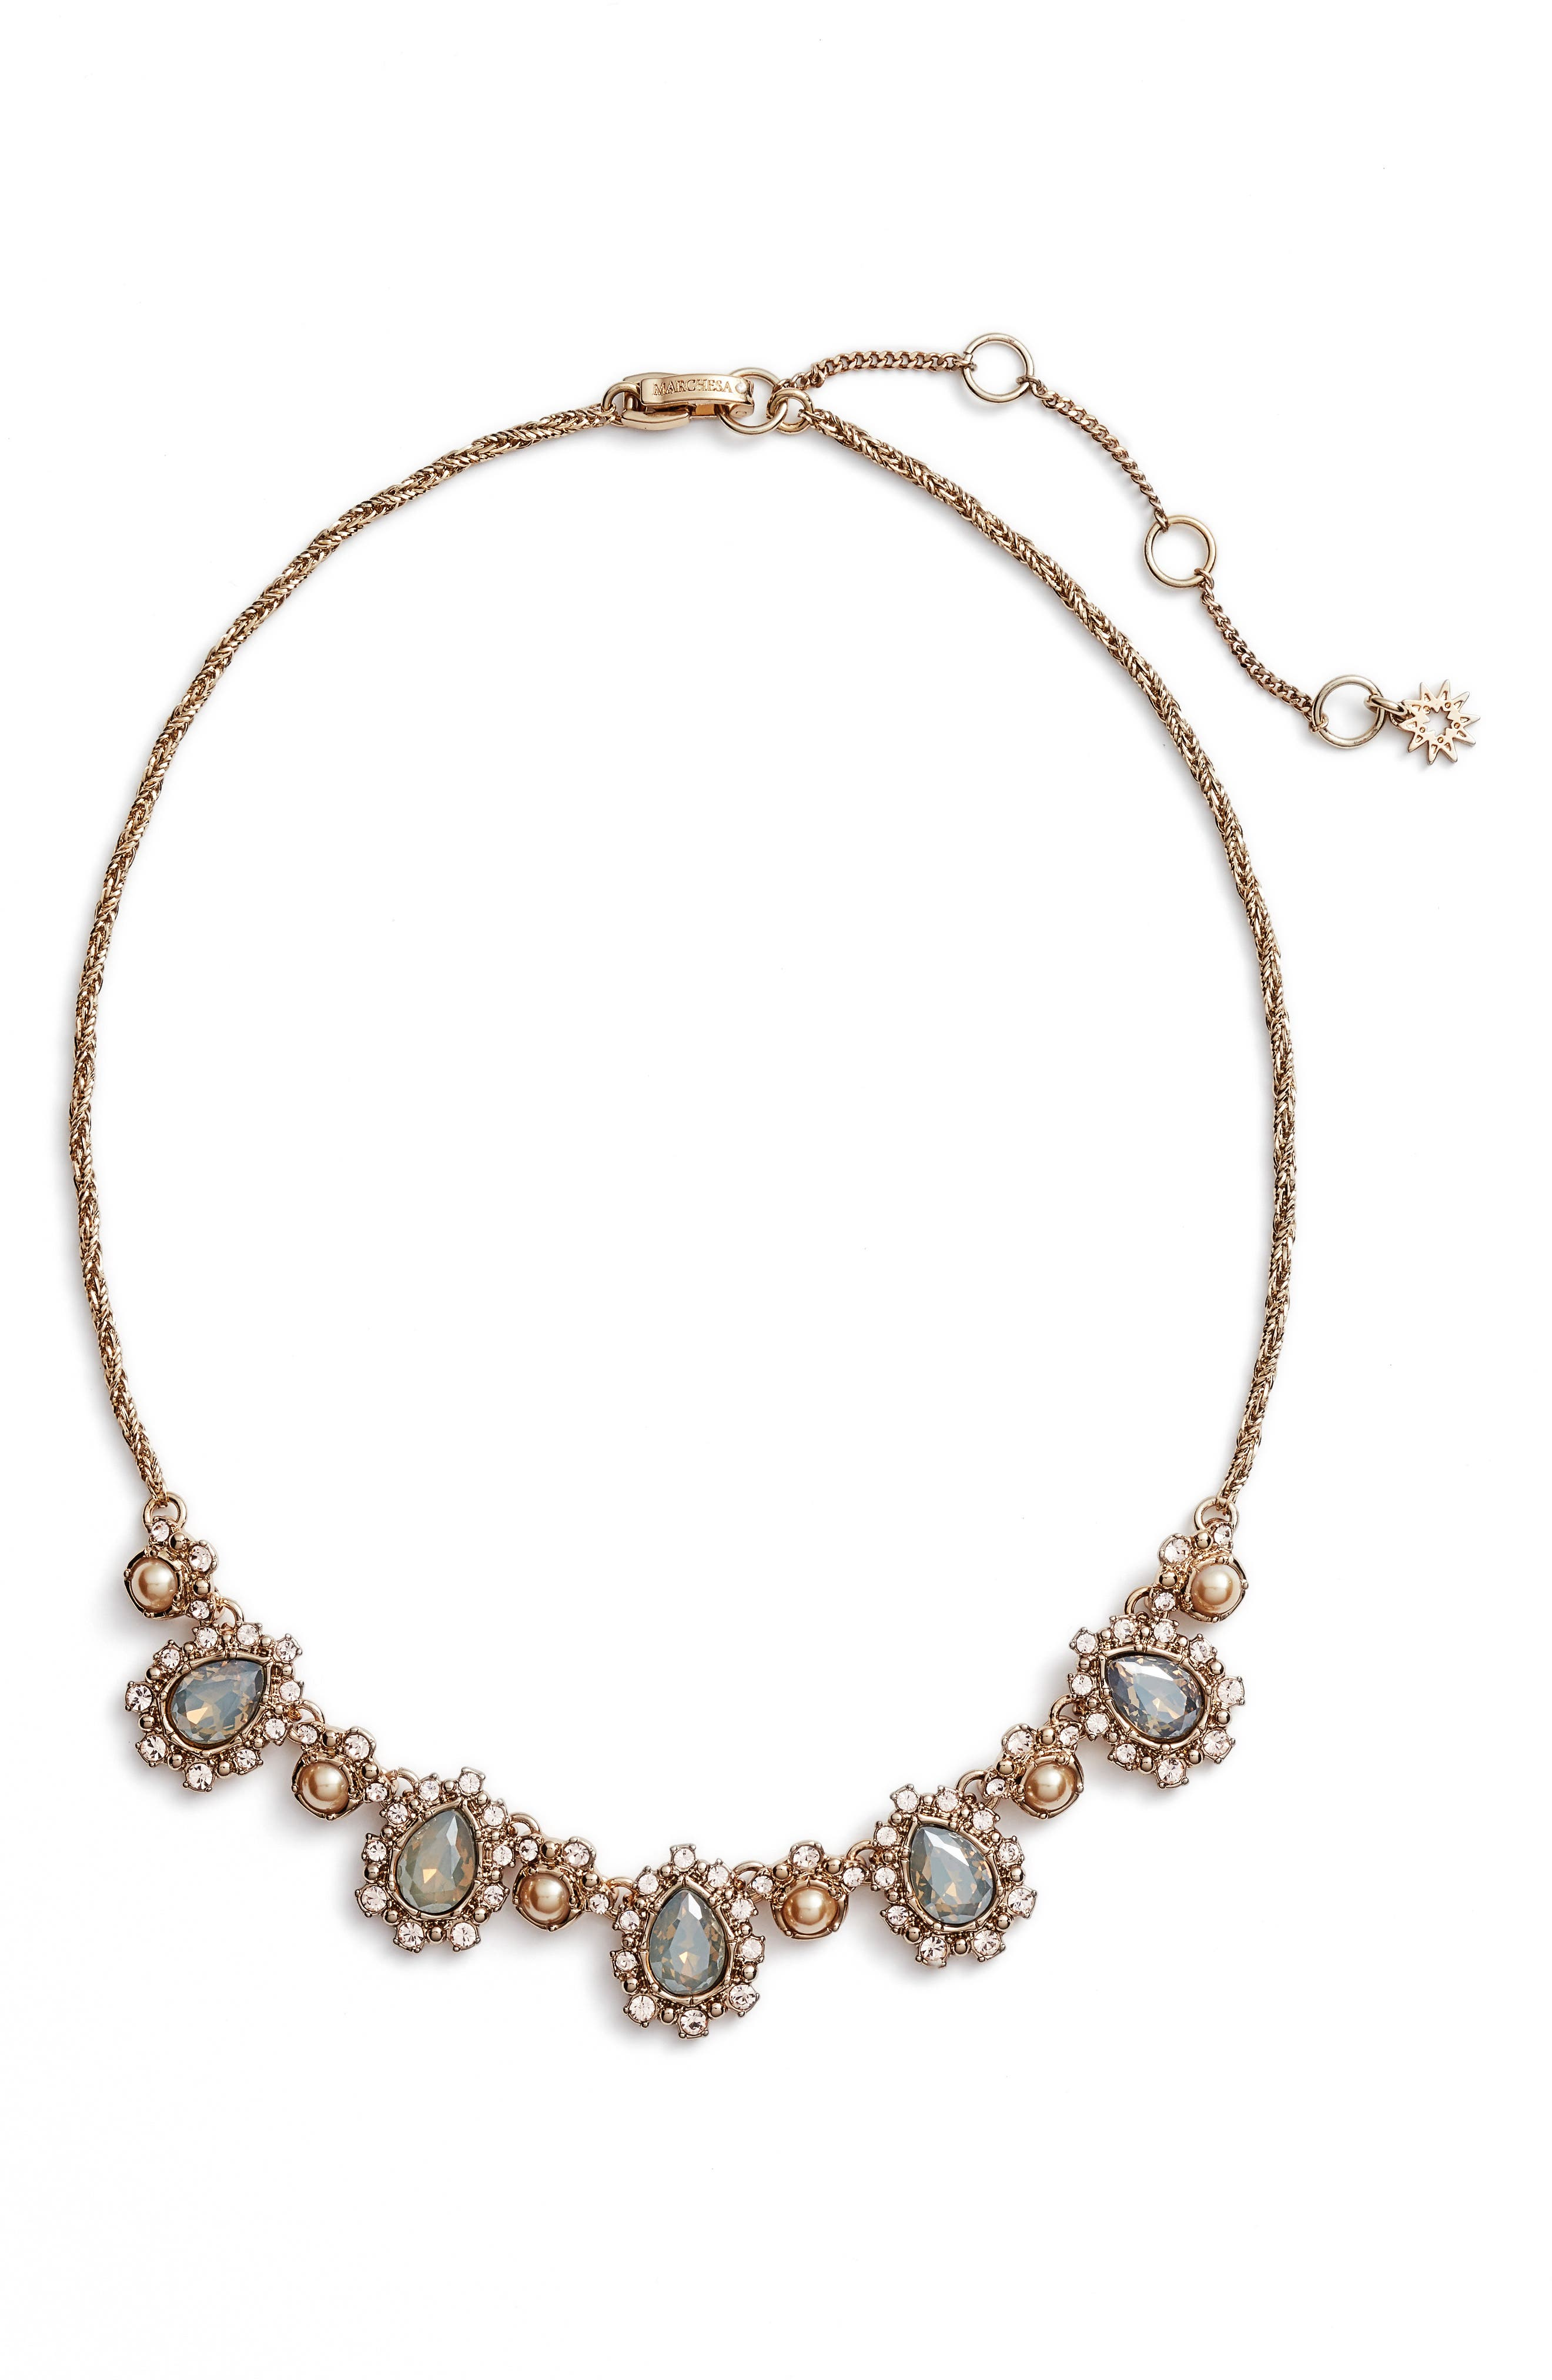 Main Image - Marchesa Crystal Collar Necklace